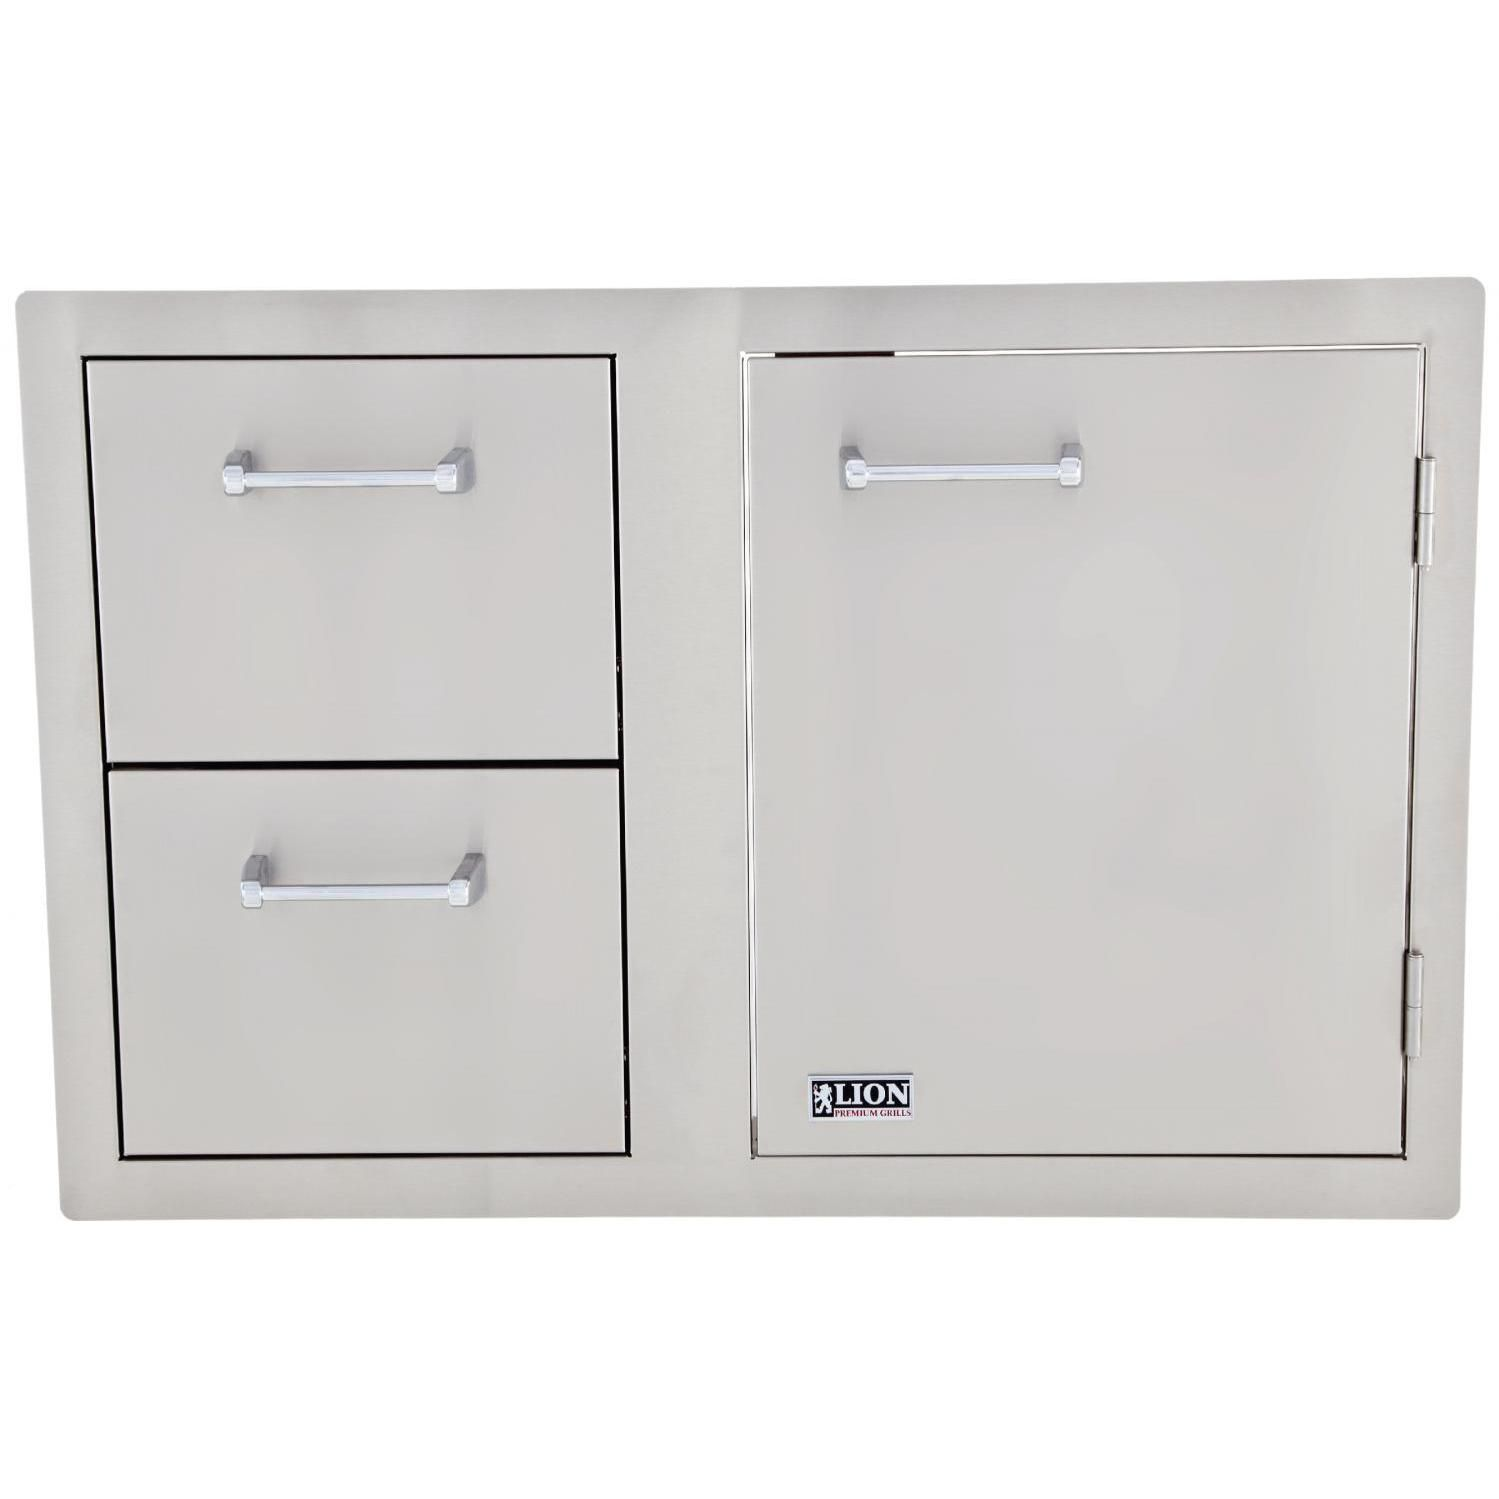 Lion 33 Inch Access Door Double Drawer Combo Bbqguys Steel Kitchen Cabinets Stainless Steel Kitchen Cabinets Outdoor Kitchen